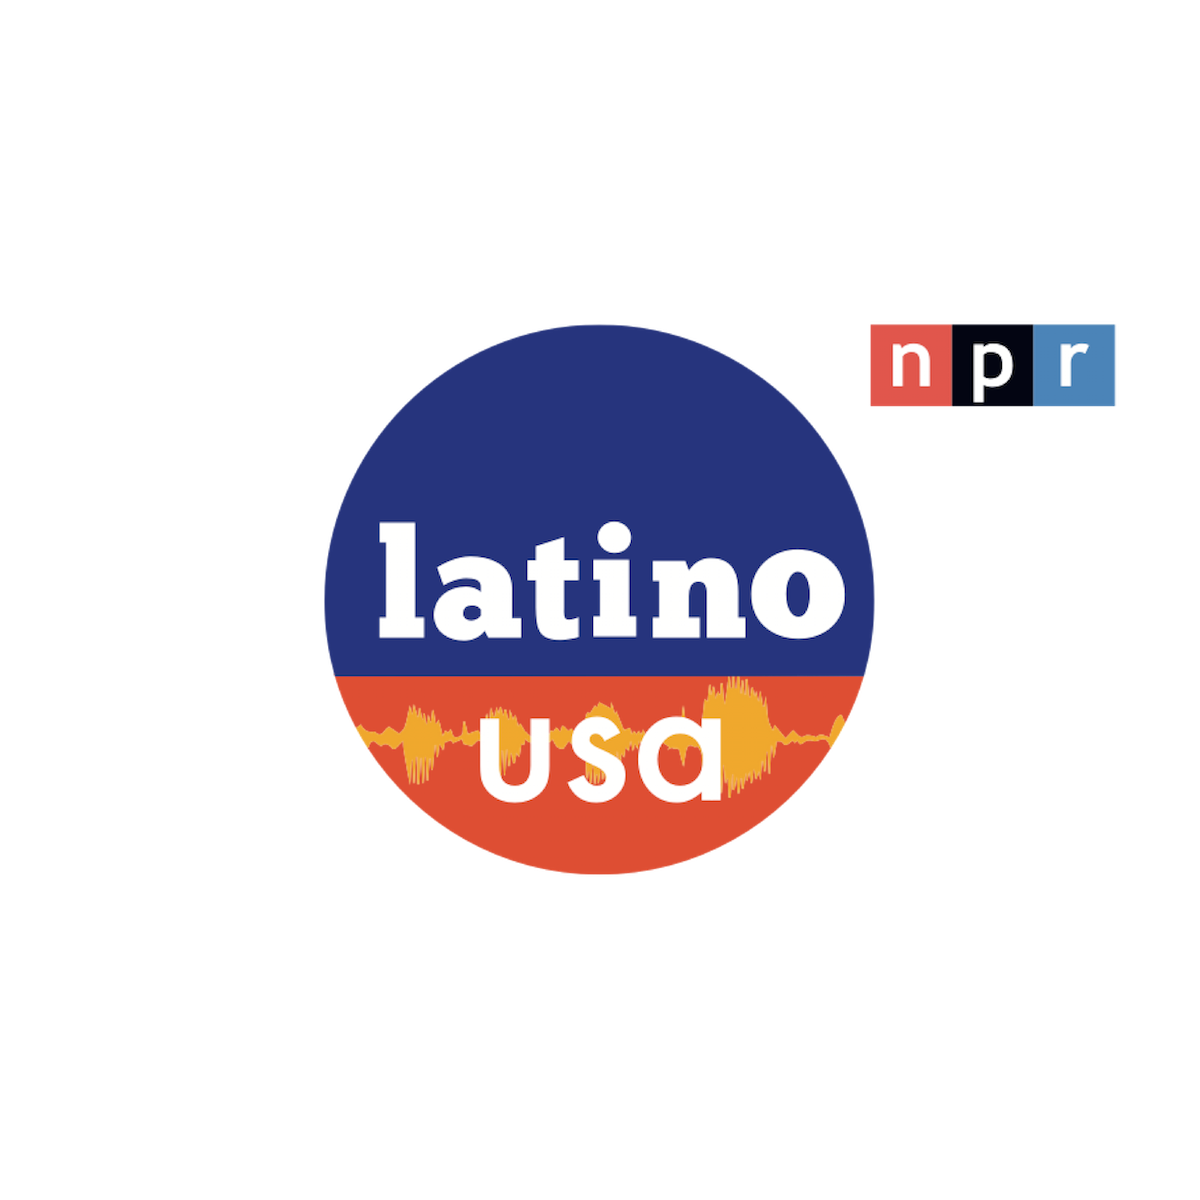 Latinx: The Ungendering of Spanish Language for NPR's Latino USA -